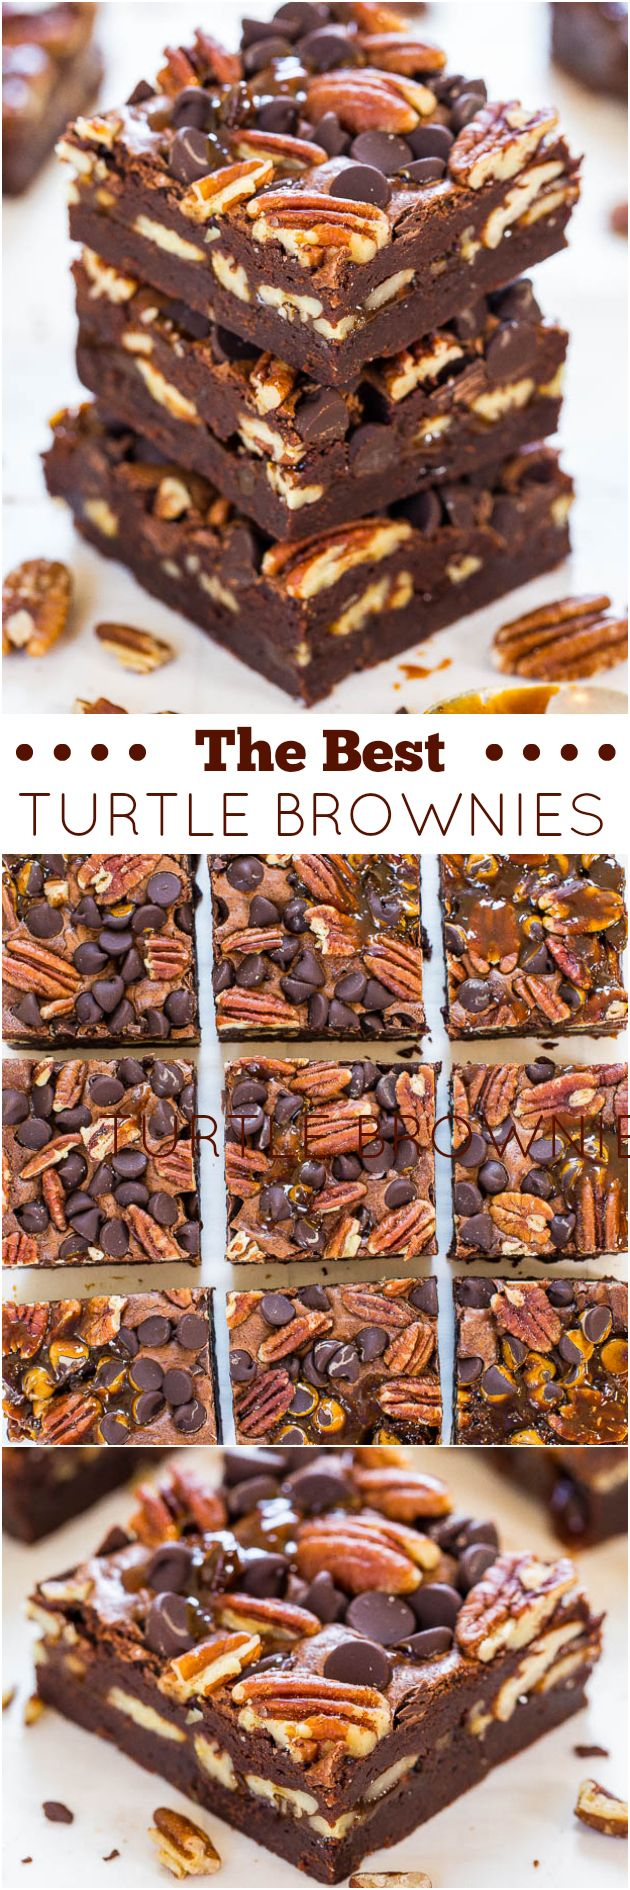 The Best Turtle Brownies - Super fudgy and loaded with chocolate, pecans and caramel! So.crazy.good!!! Impress your mom on #MothersDay with these!